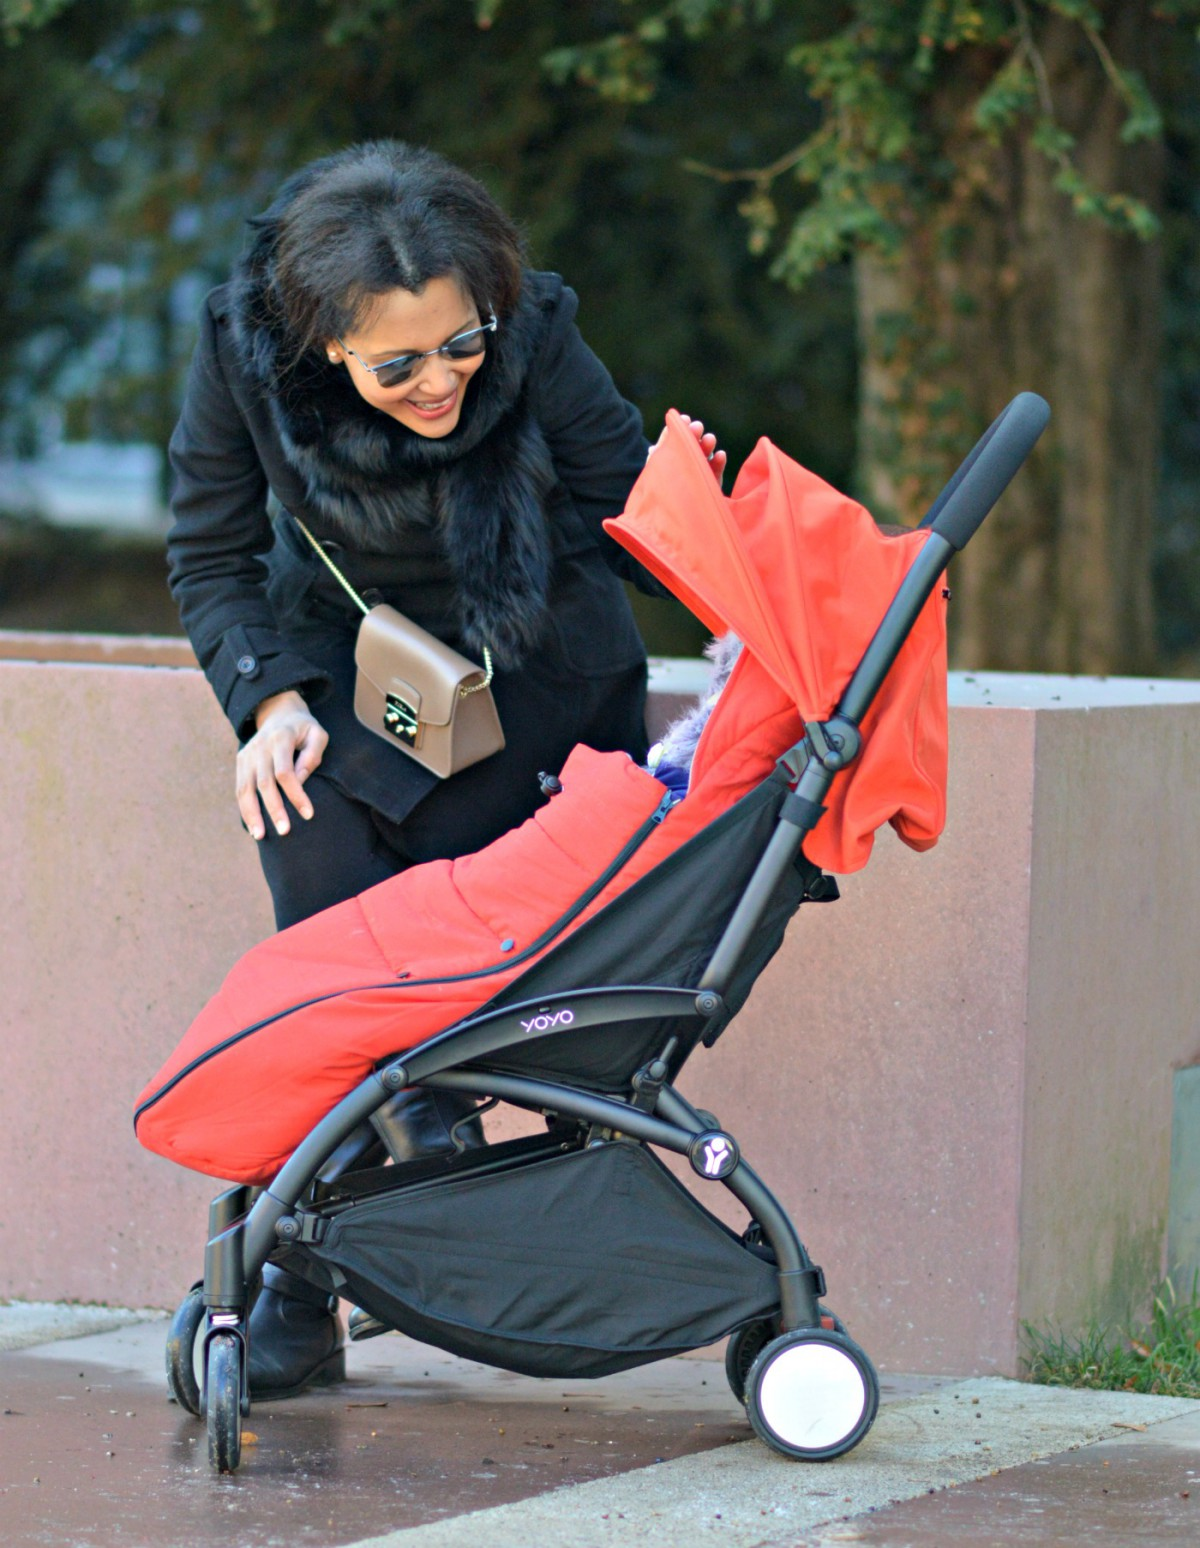 Babyzen Yoyo Stroller Carry Bag Babyzen Yoyo Plus Stroller Information On Currently Wearing